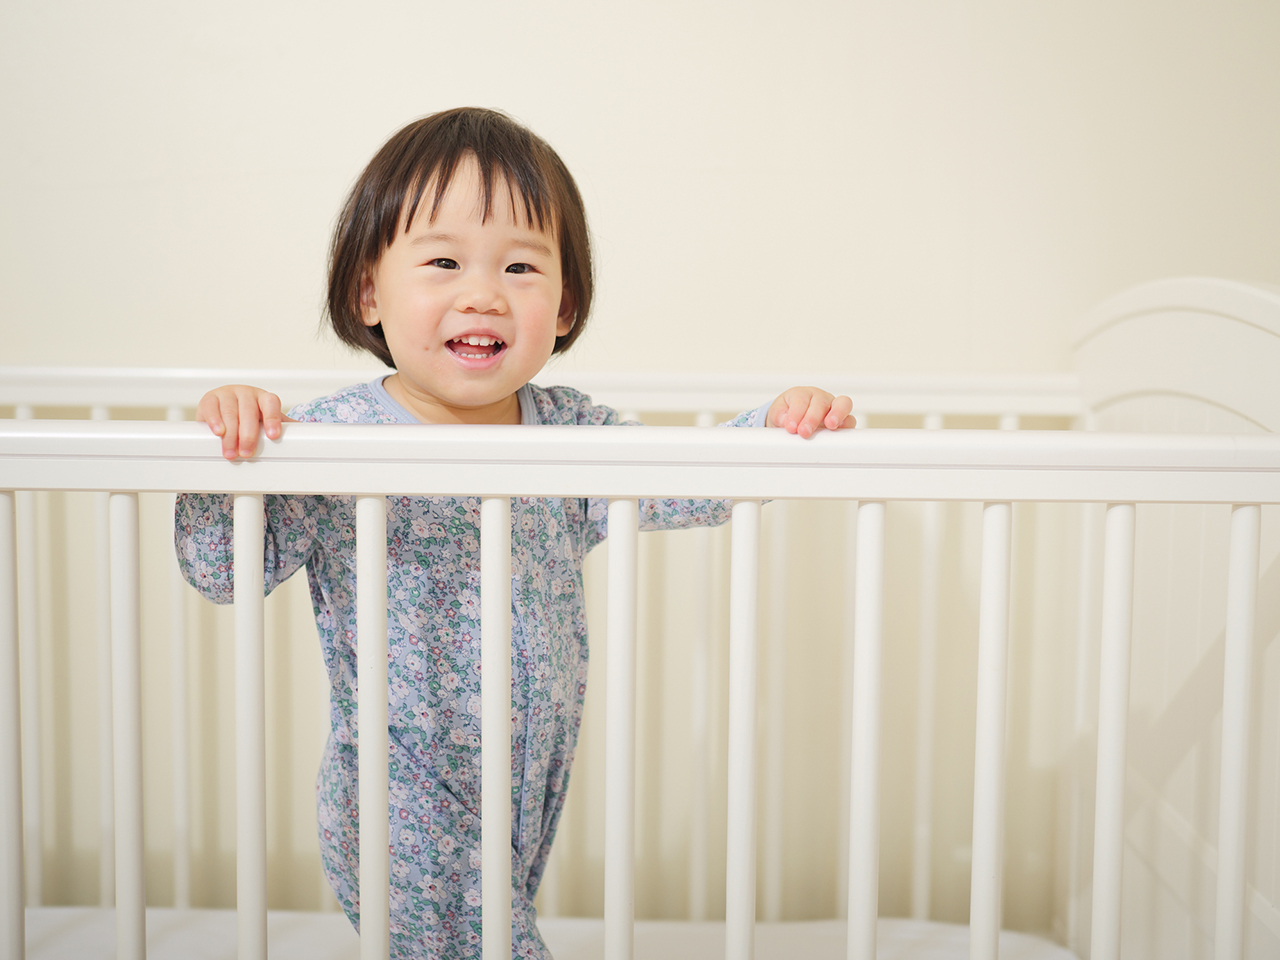 12-month-old baby in floral pyjamas standing up in a white crib